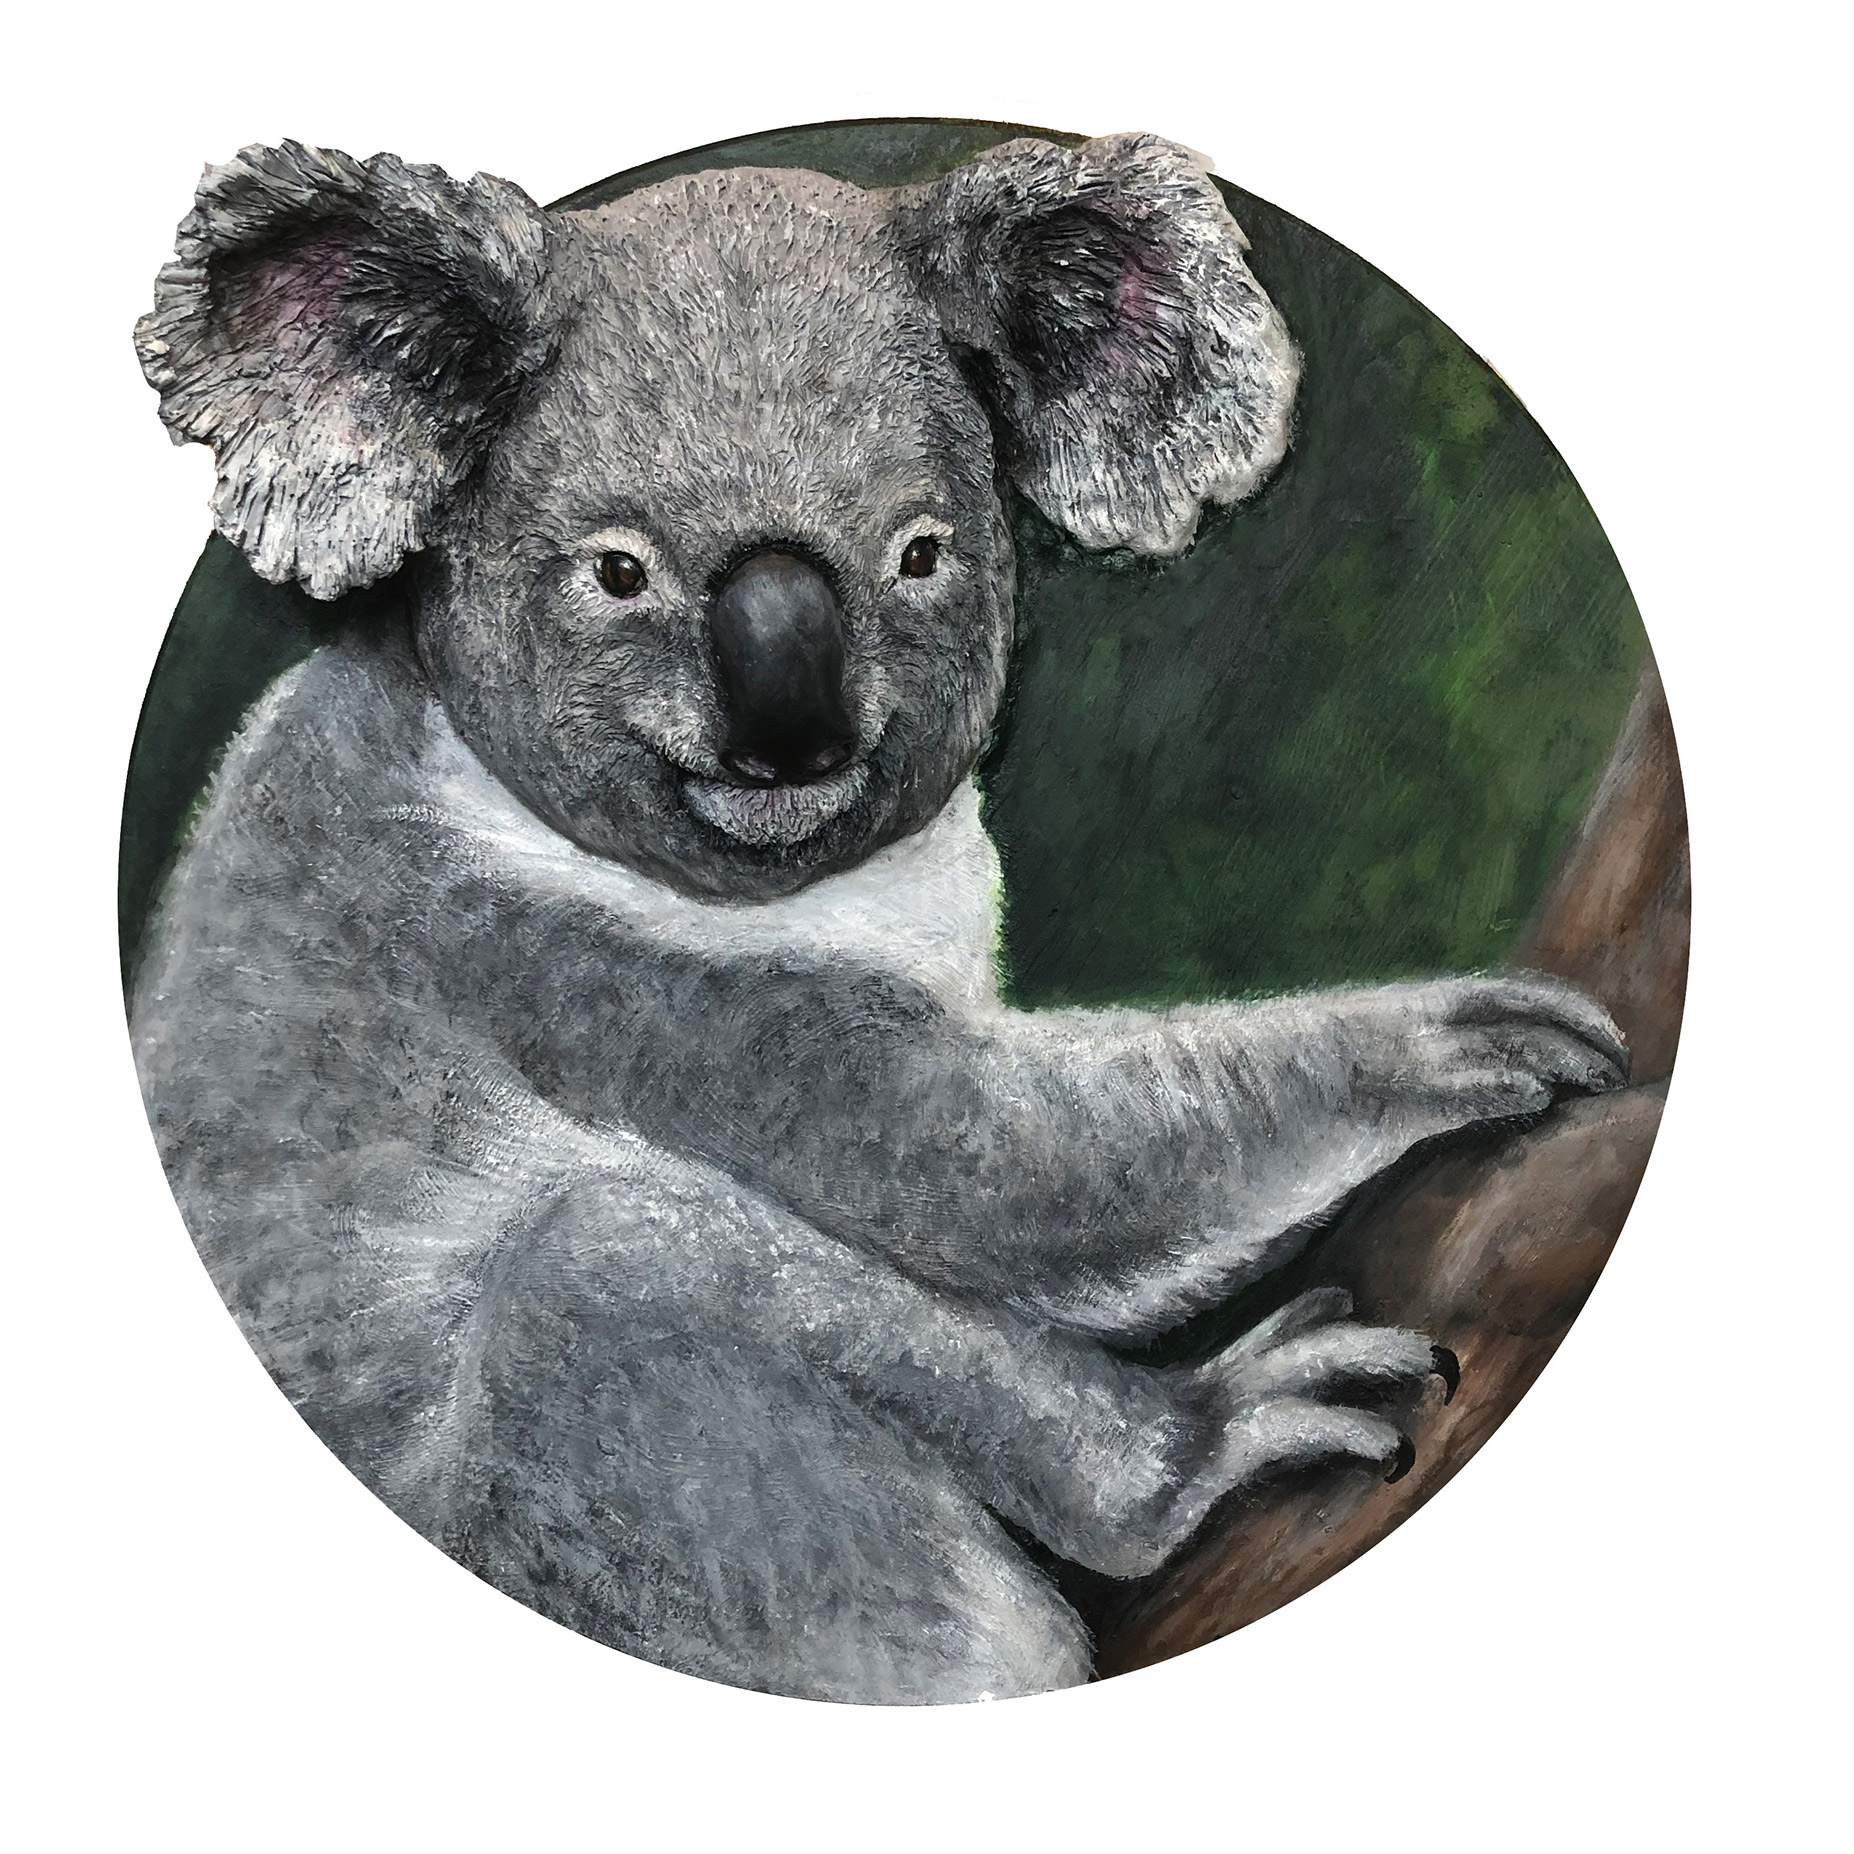 Koala Sculpture painting is a donation for Australia Fires